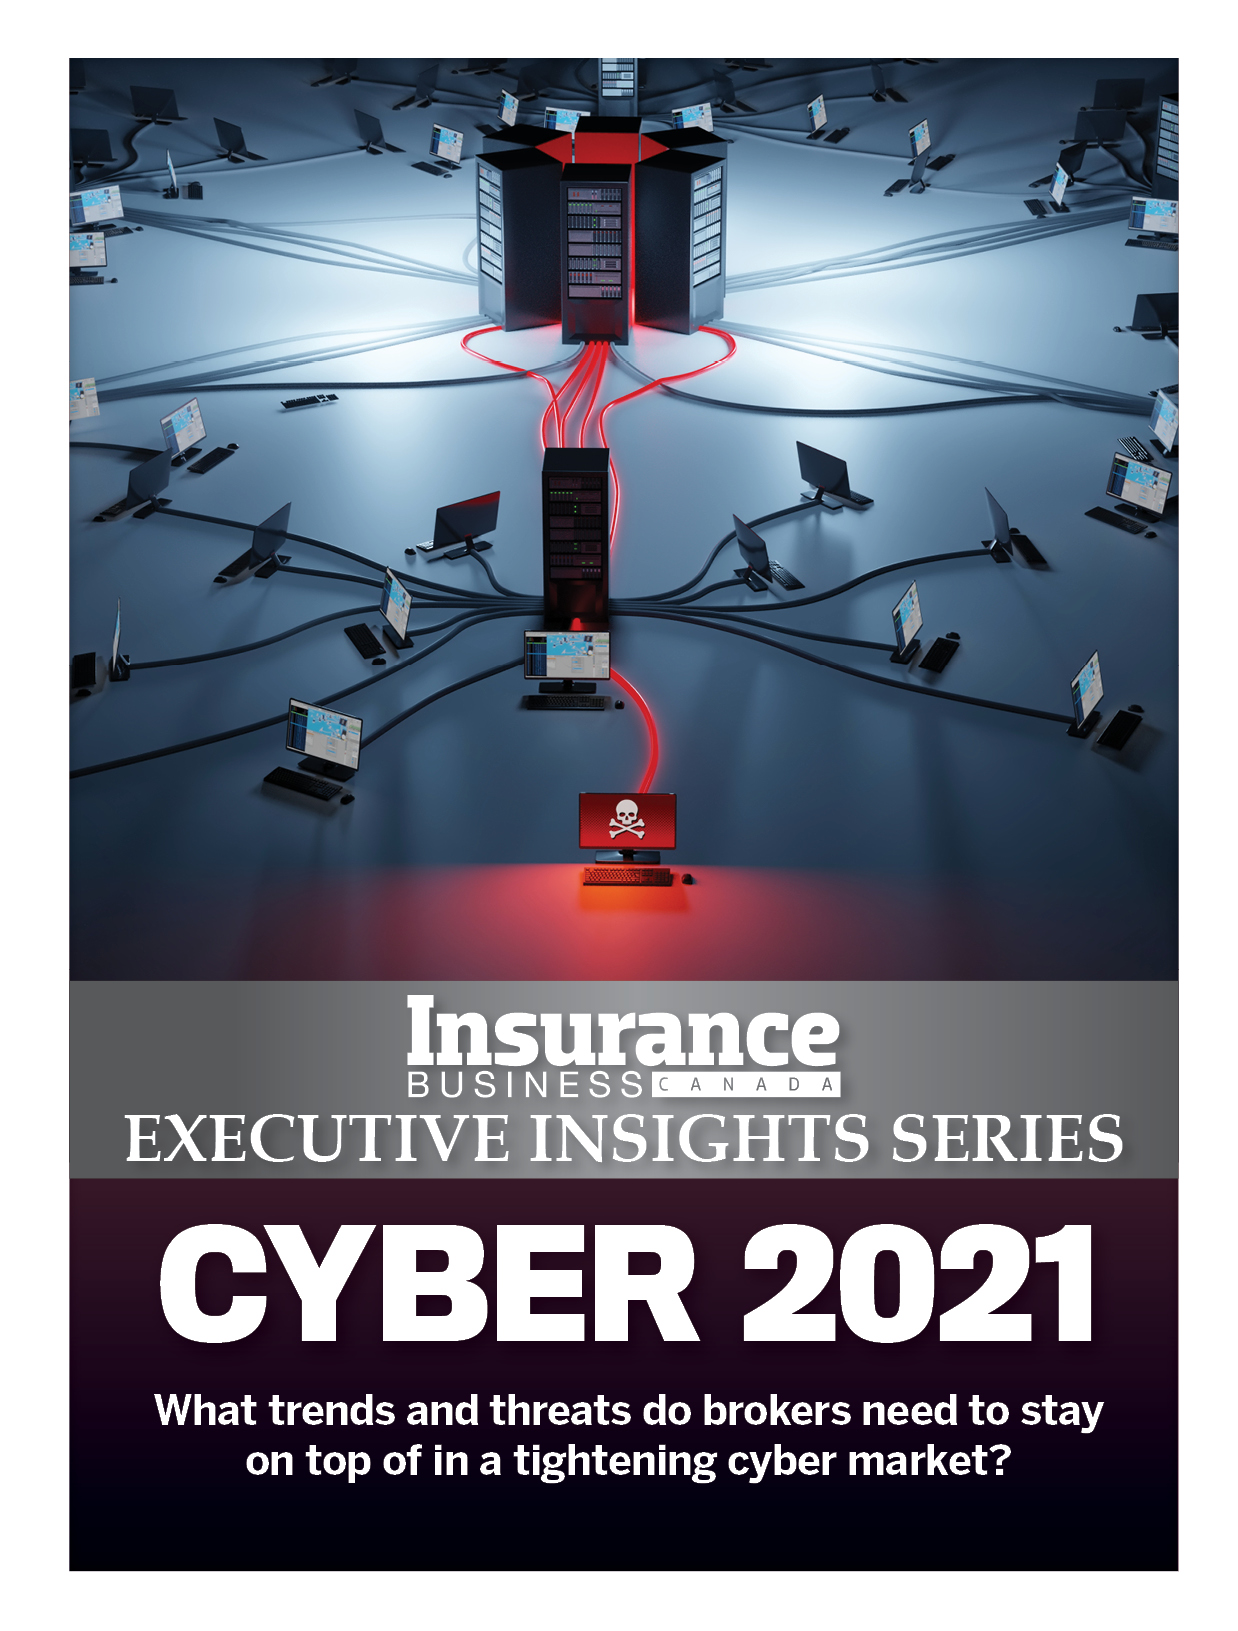 Executive Insights Series: Cyber 2021